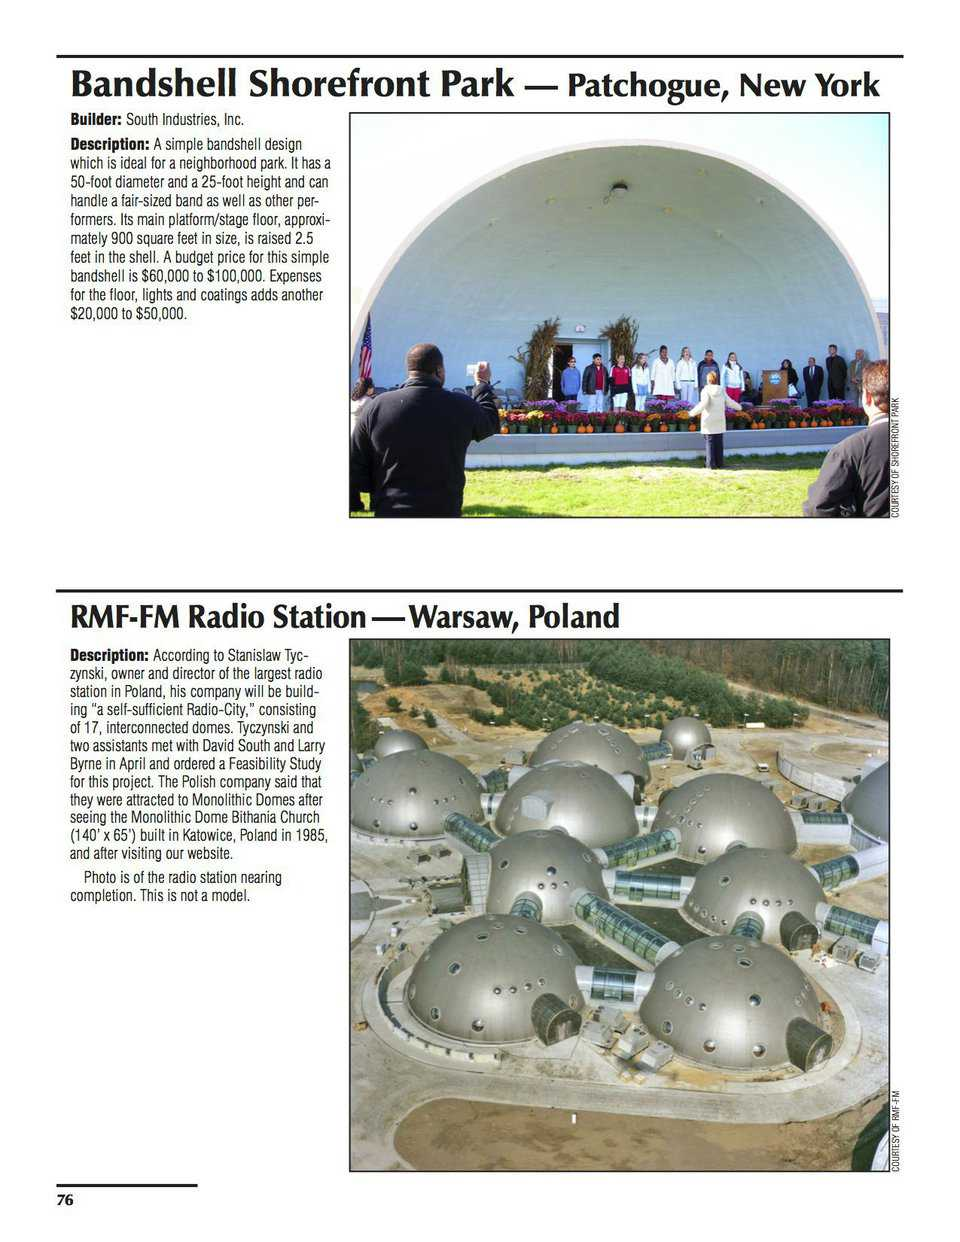 Sample pages – Bandshell Shorefront Park, Patchogue, New York & RMF-FM Radio Station, Warsaw, Poland